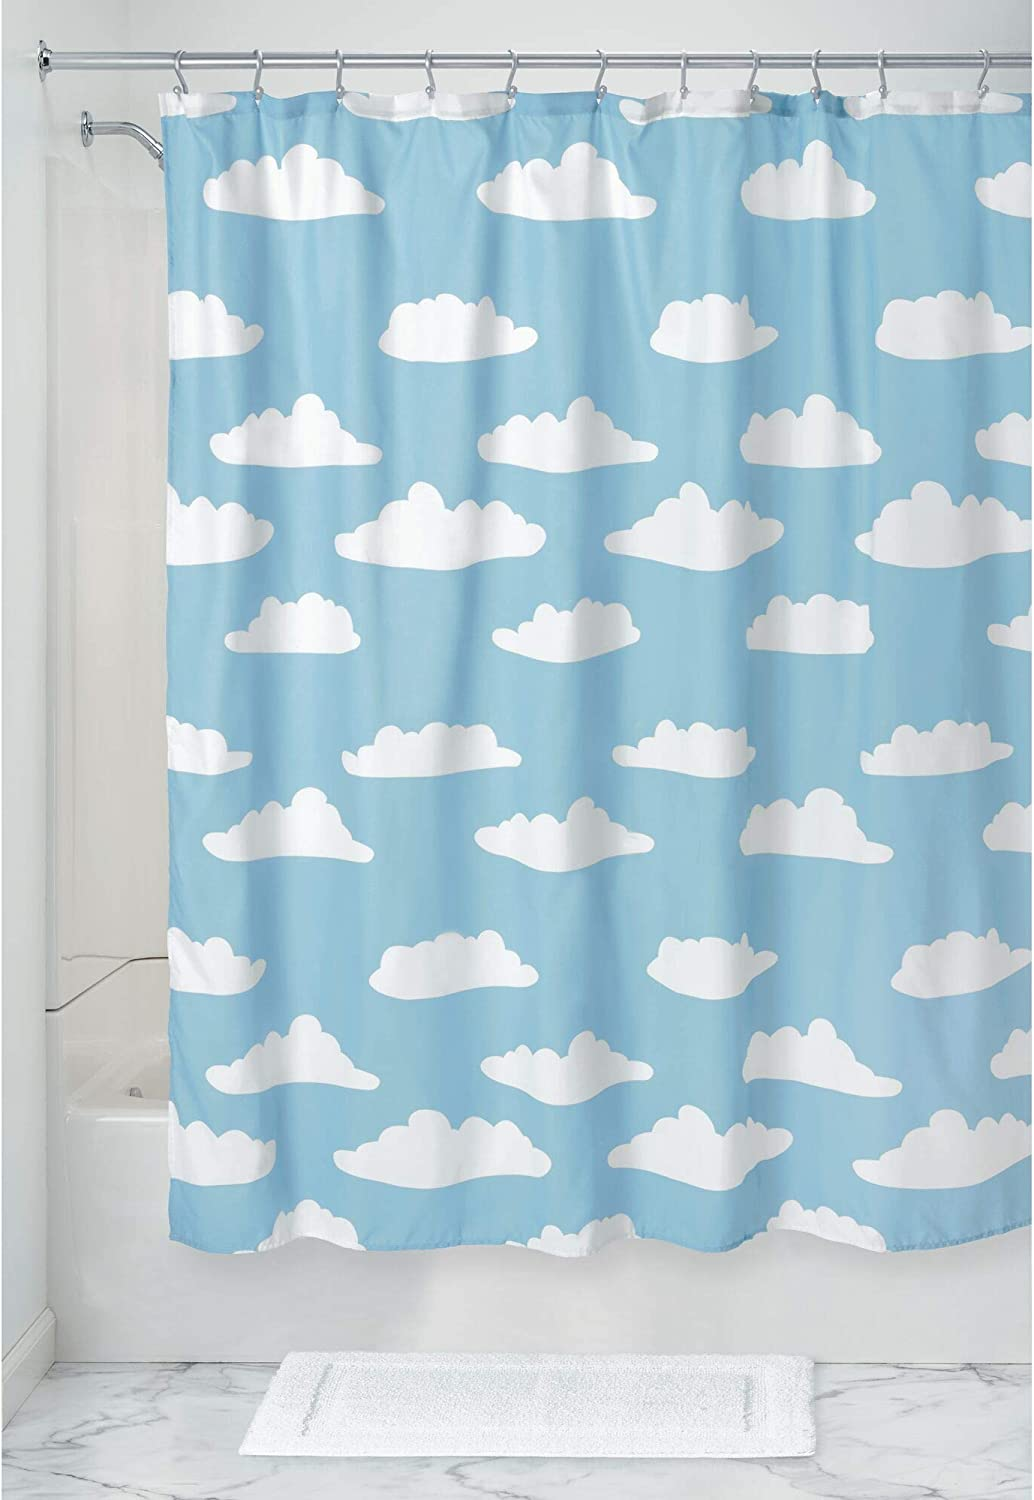 """iDesign Fabric Shower Curtain with Cloud Pattern Water-Resistant Shower Curtain for Kids, Teenagers, College Dorm Bathrooms, 72"""" x 72"""", Blue and White"""